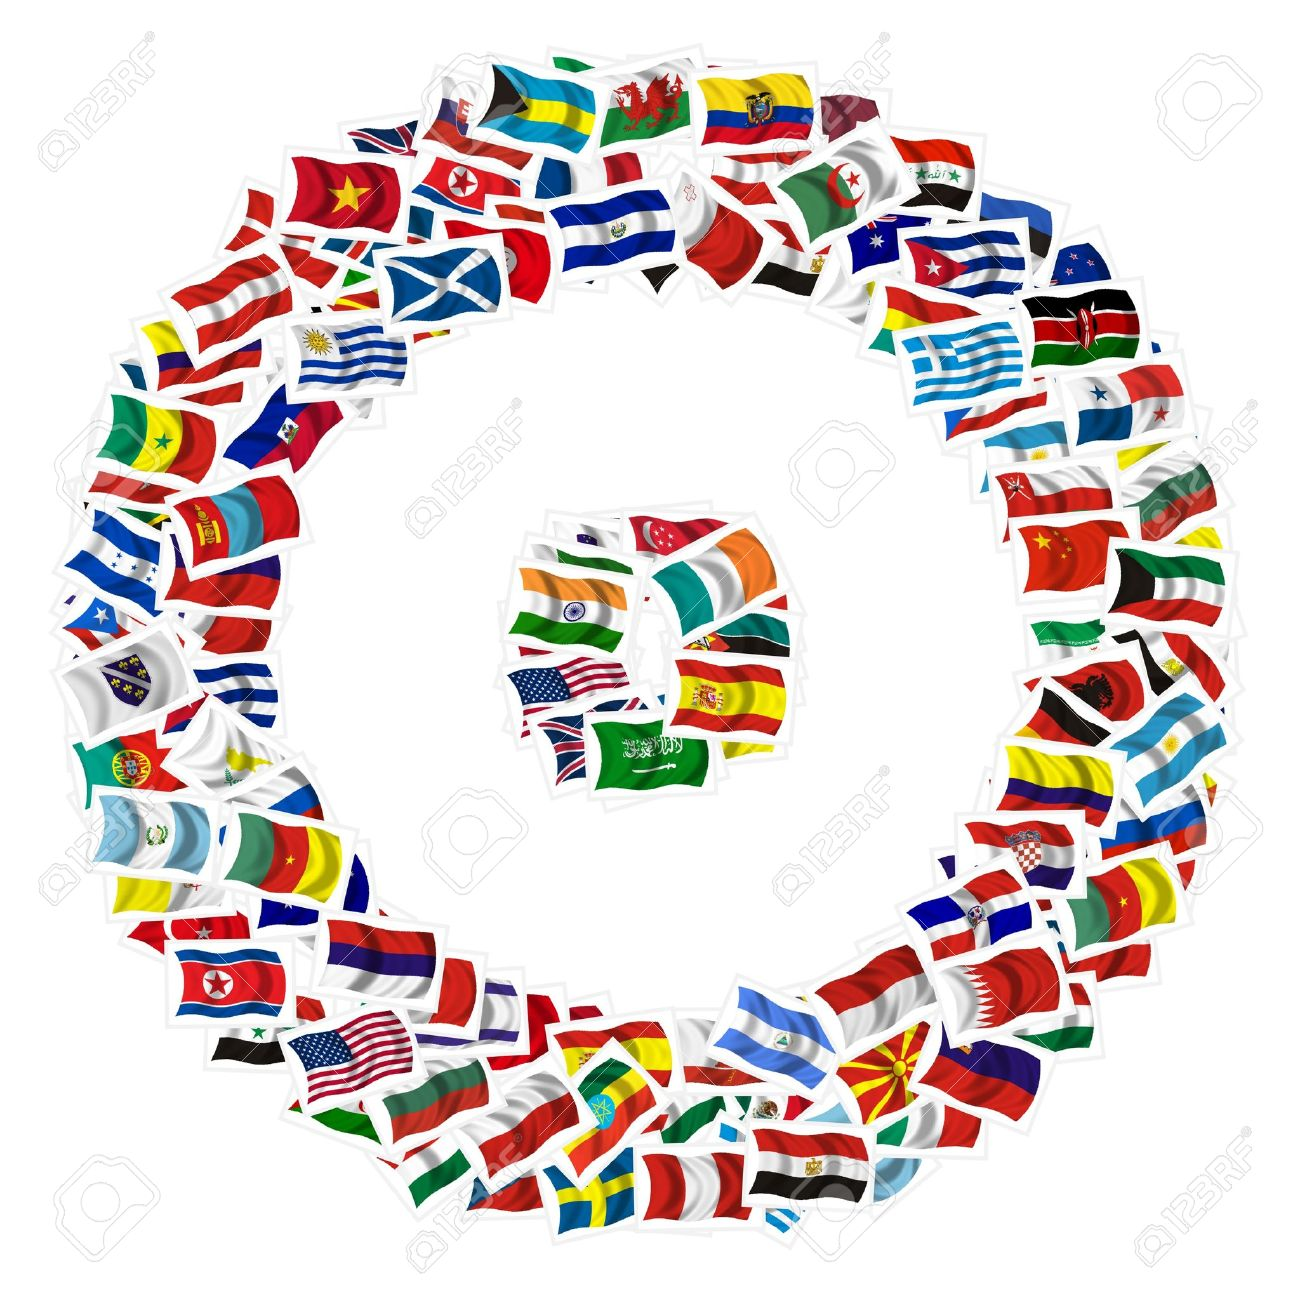 Collection of Flags on a withe background Stock Photo - 6007427